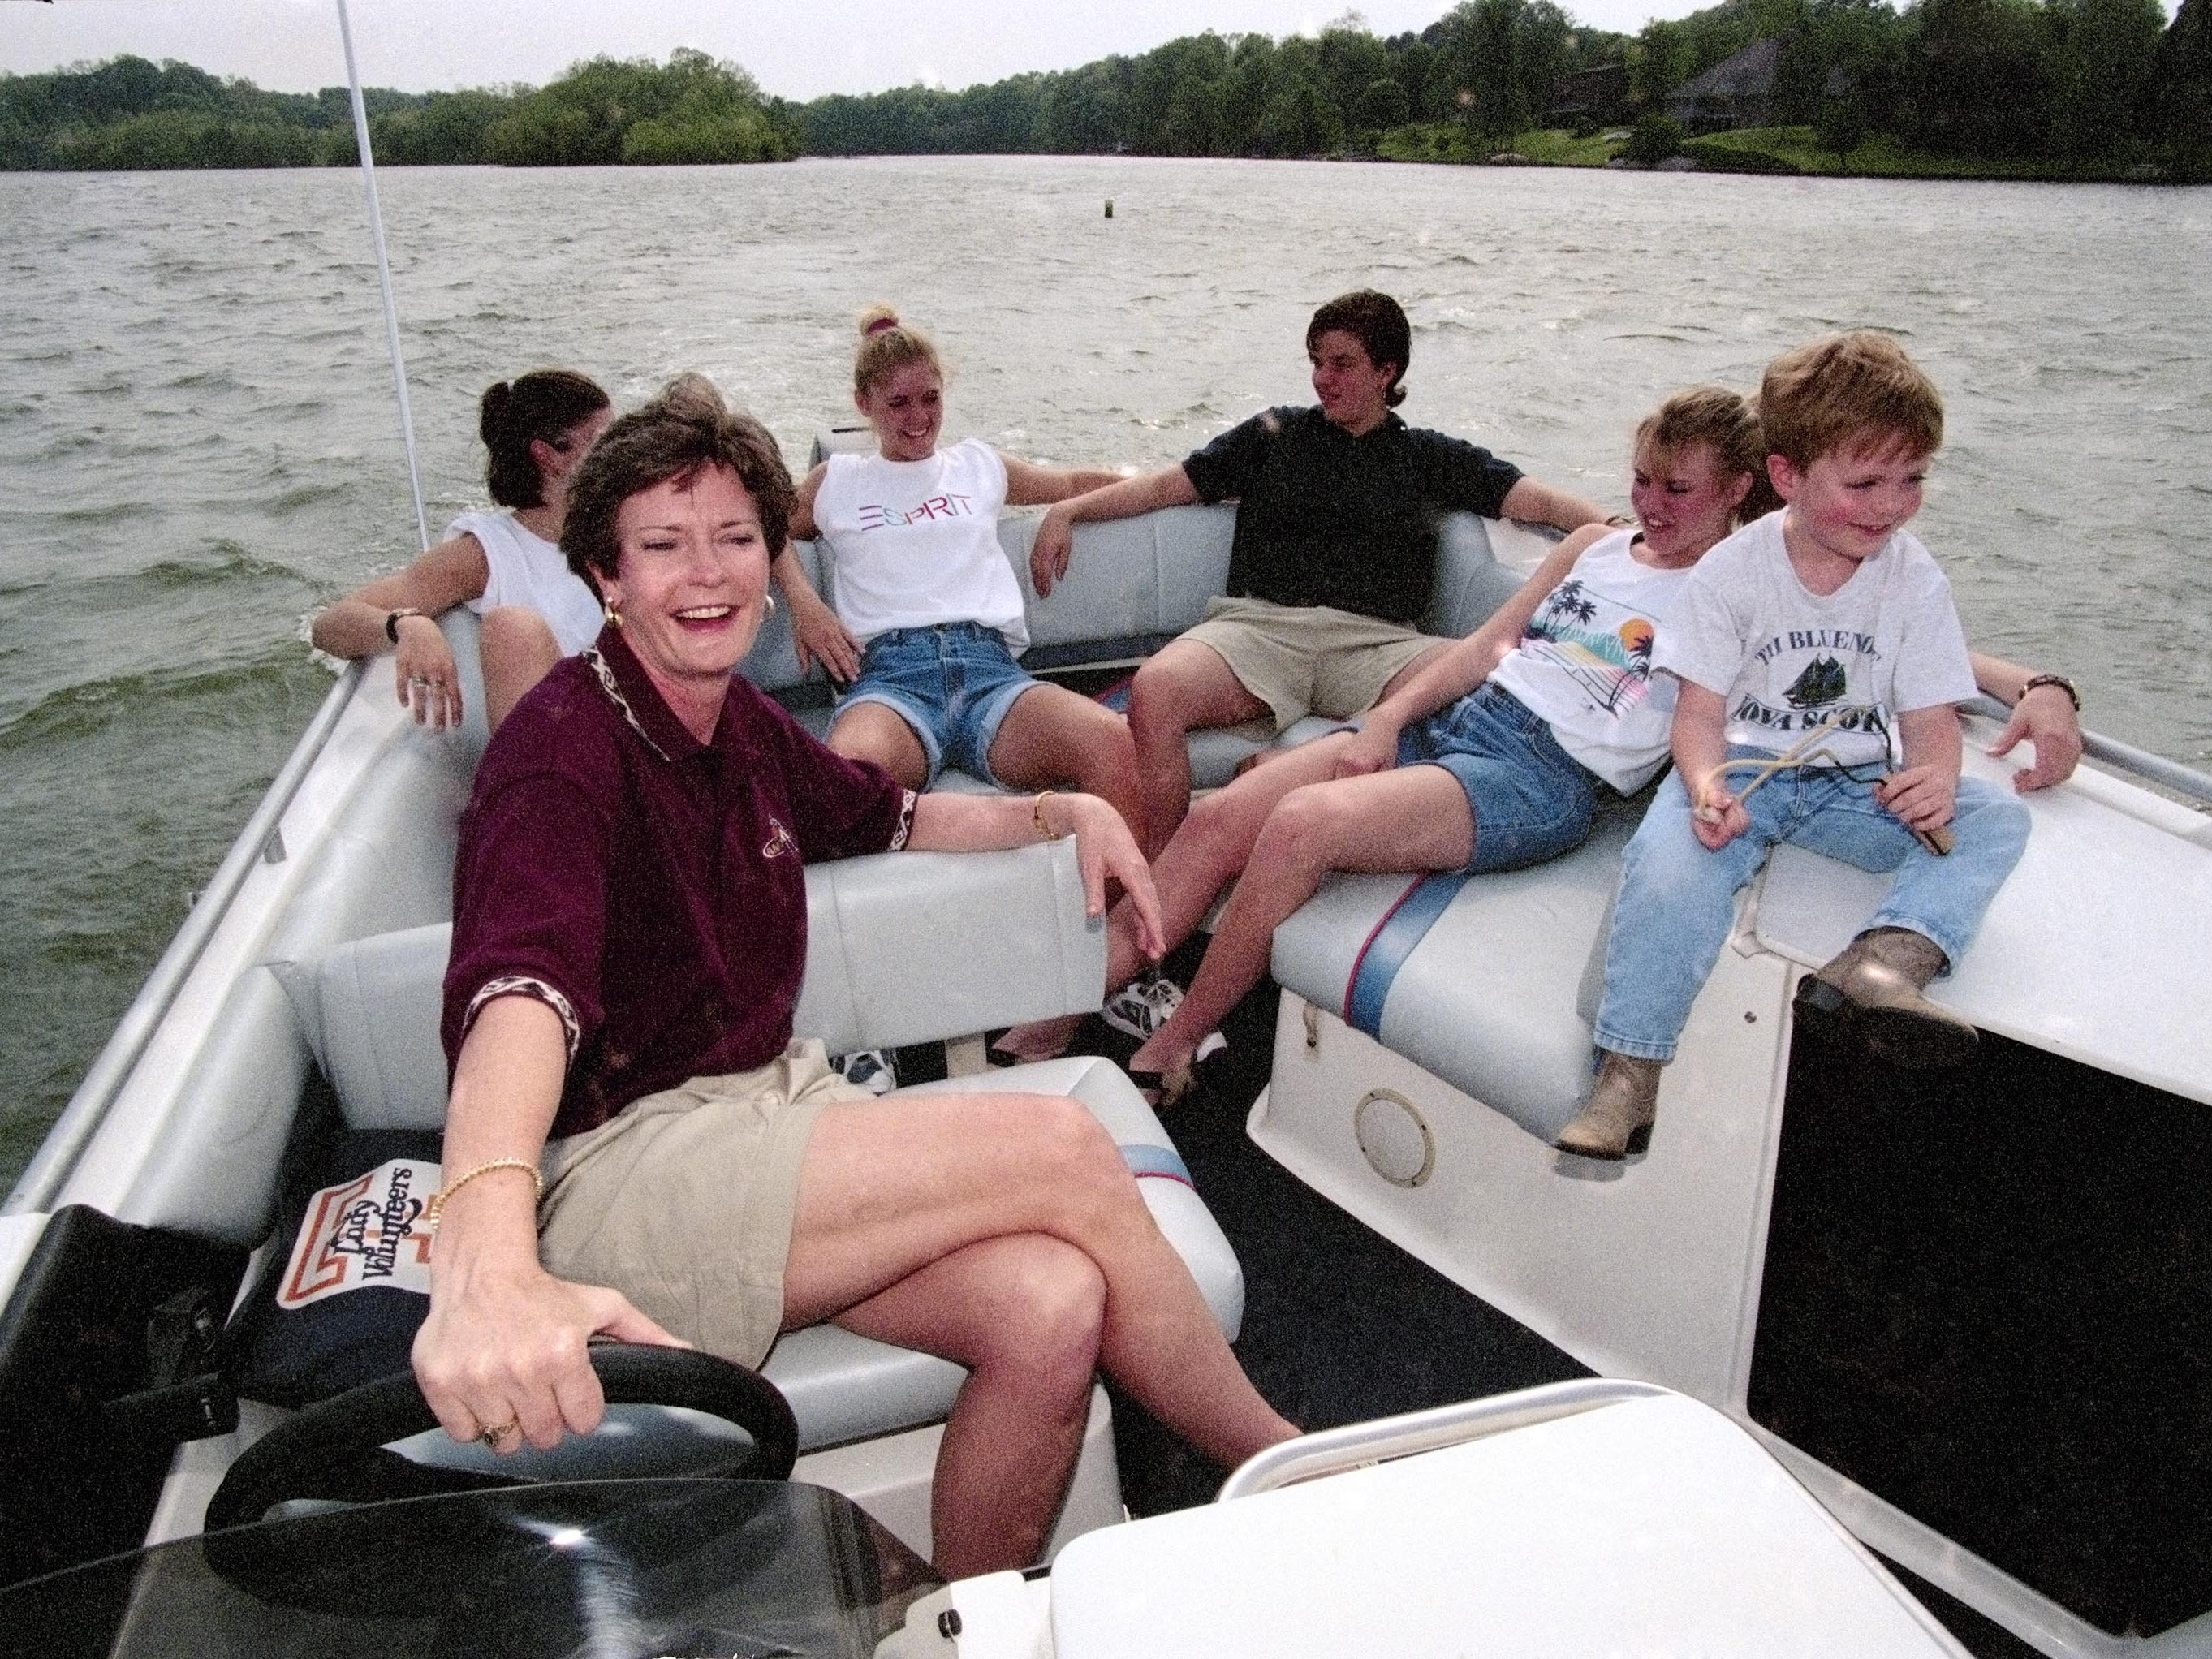 Coach Pat Summitt and her son, Tyler, take some Lady Vol team members for a boat ride on May 26, 1996 on Fort Loudoun Lake near Knoxville.